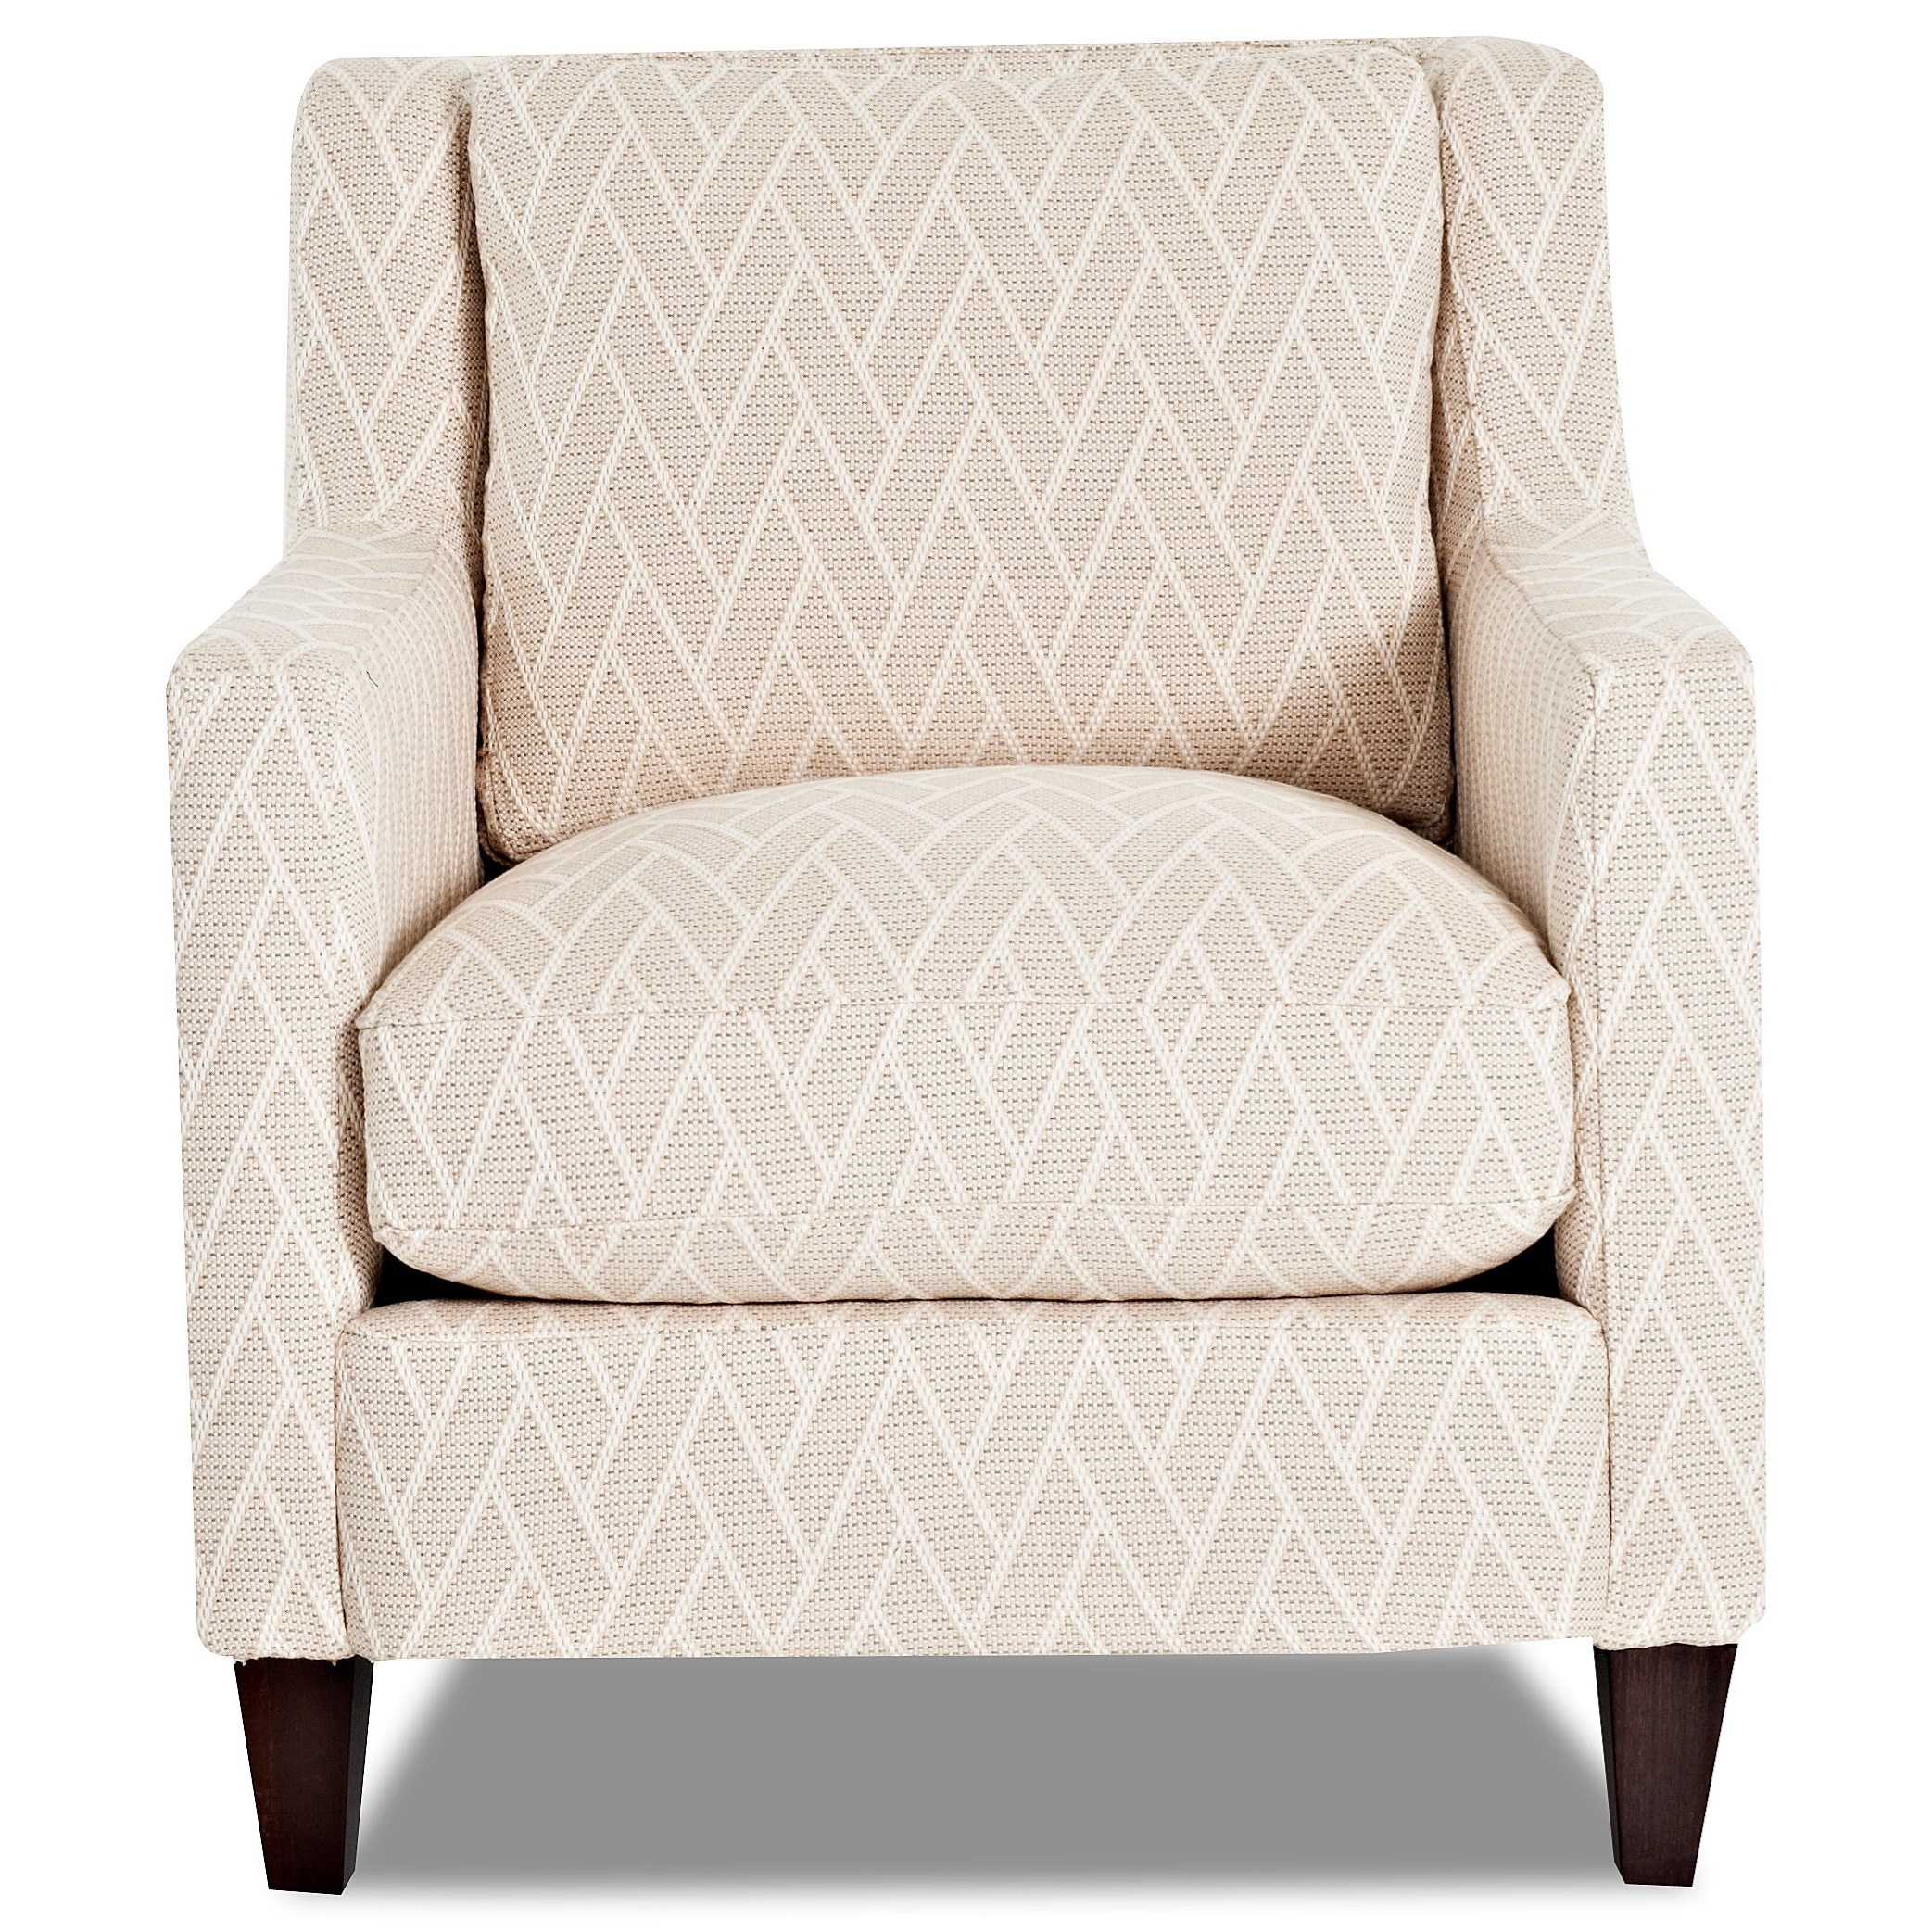 Trisha Yearwood Home Collection by Klaussner Valley Forge Accent Chair - Item Number: D9290 C-DAVE-ALAB